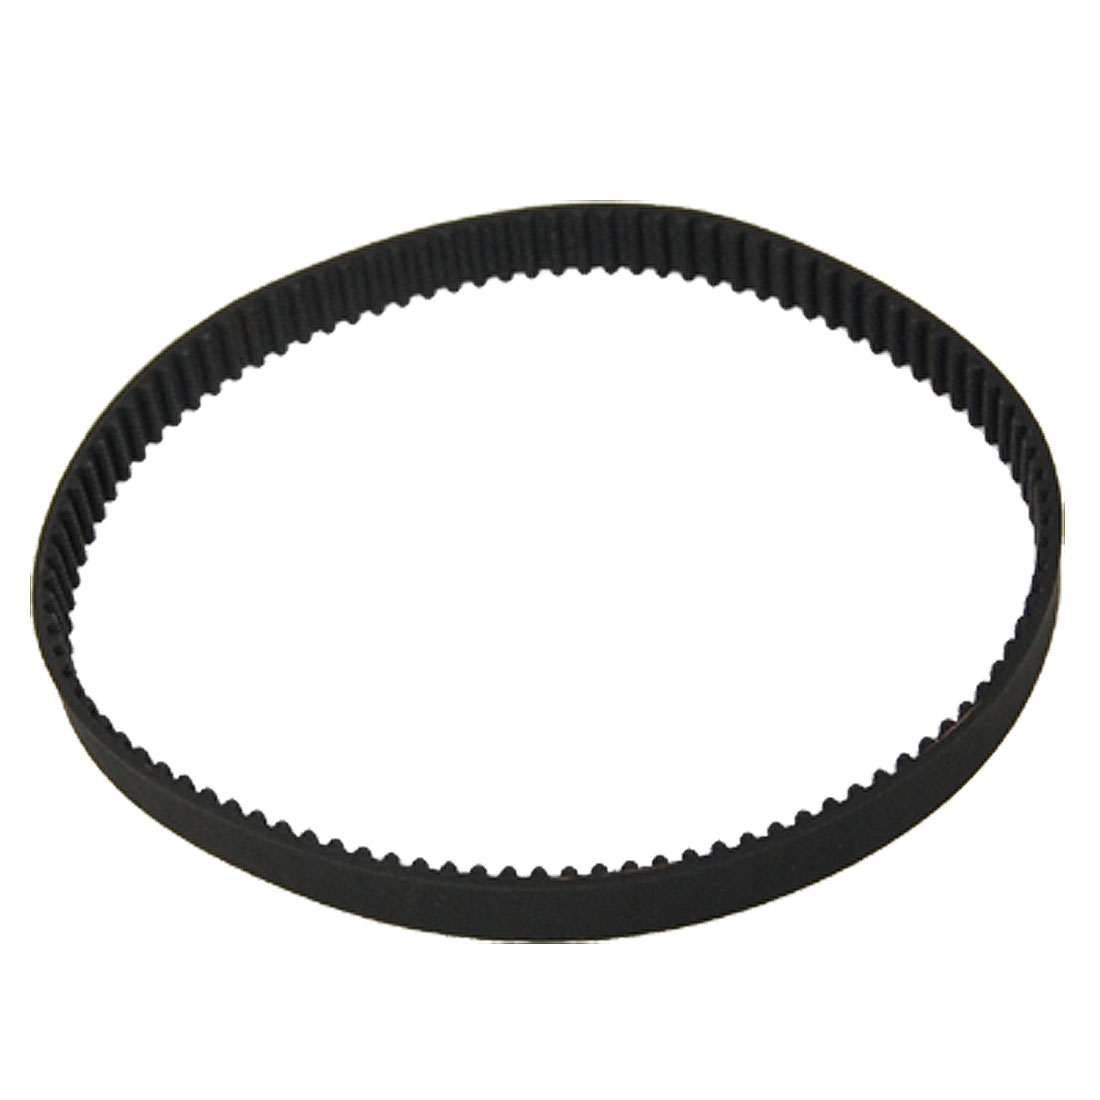 10mm Width 100 Teeth Black Synchronous Timing Belt Black-330